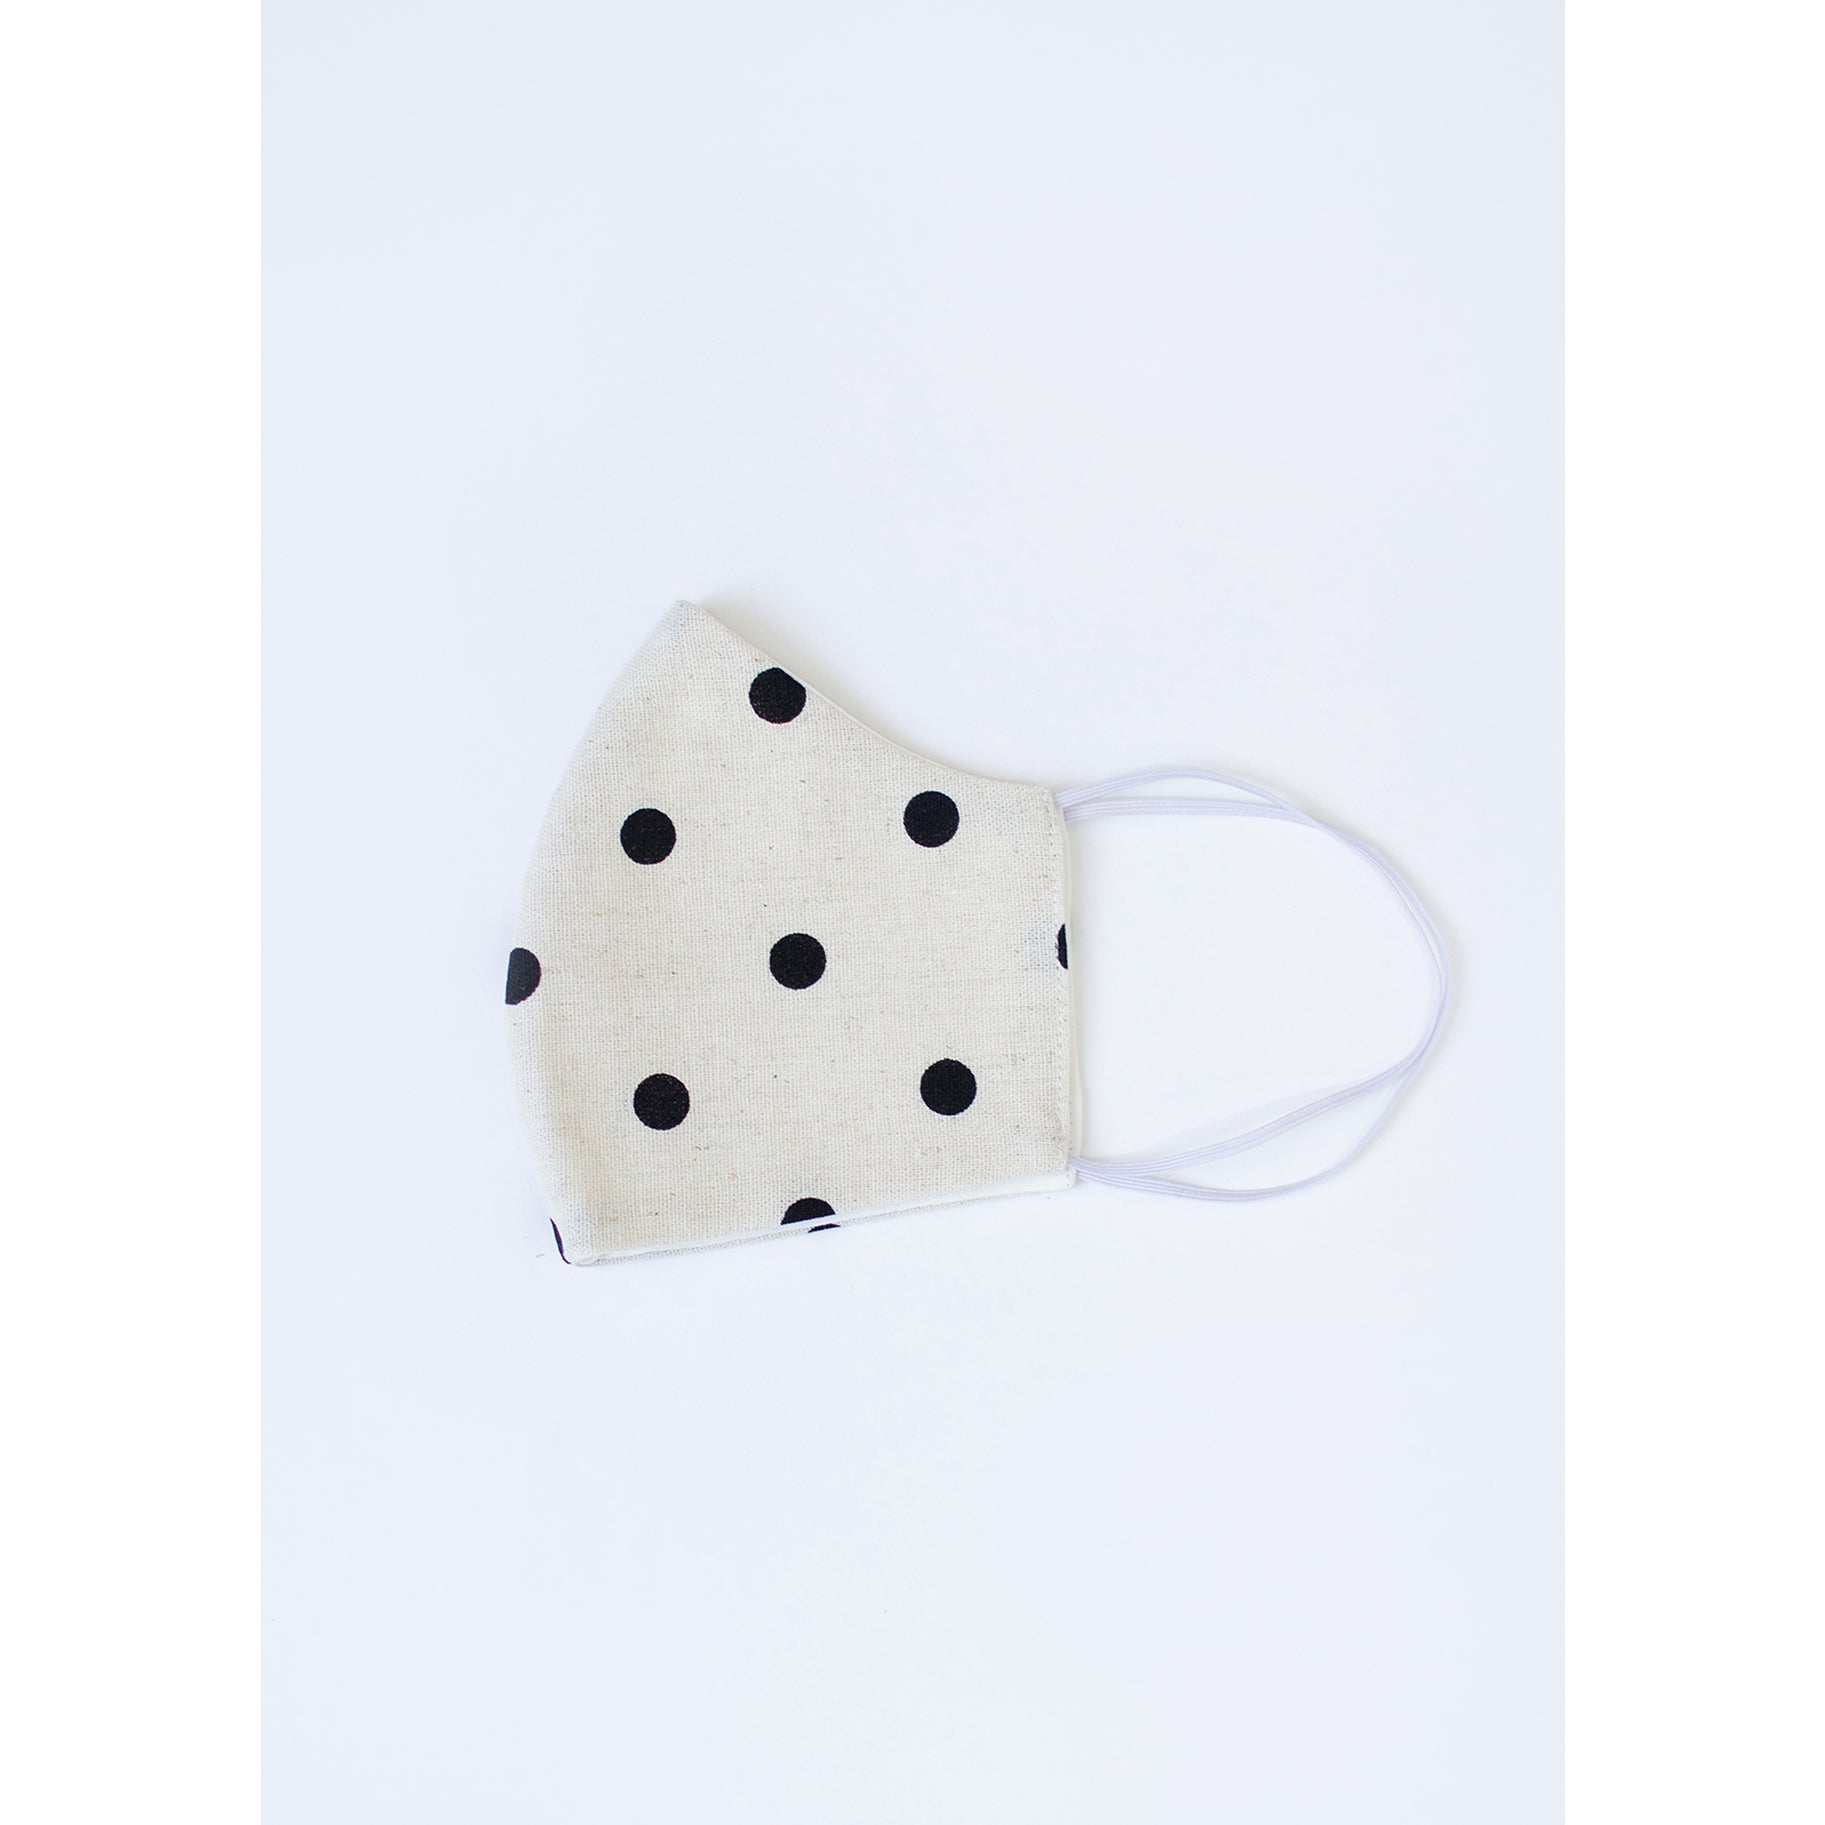 Folded in half white face mask with black polka dots